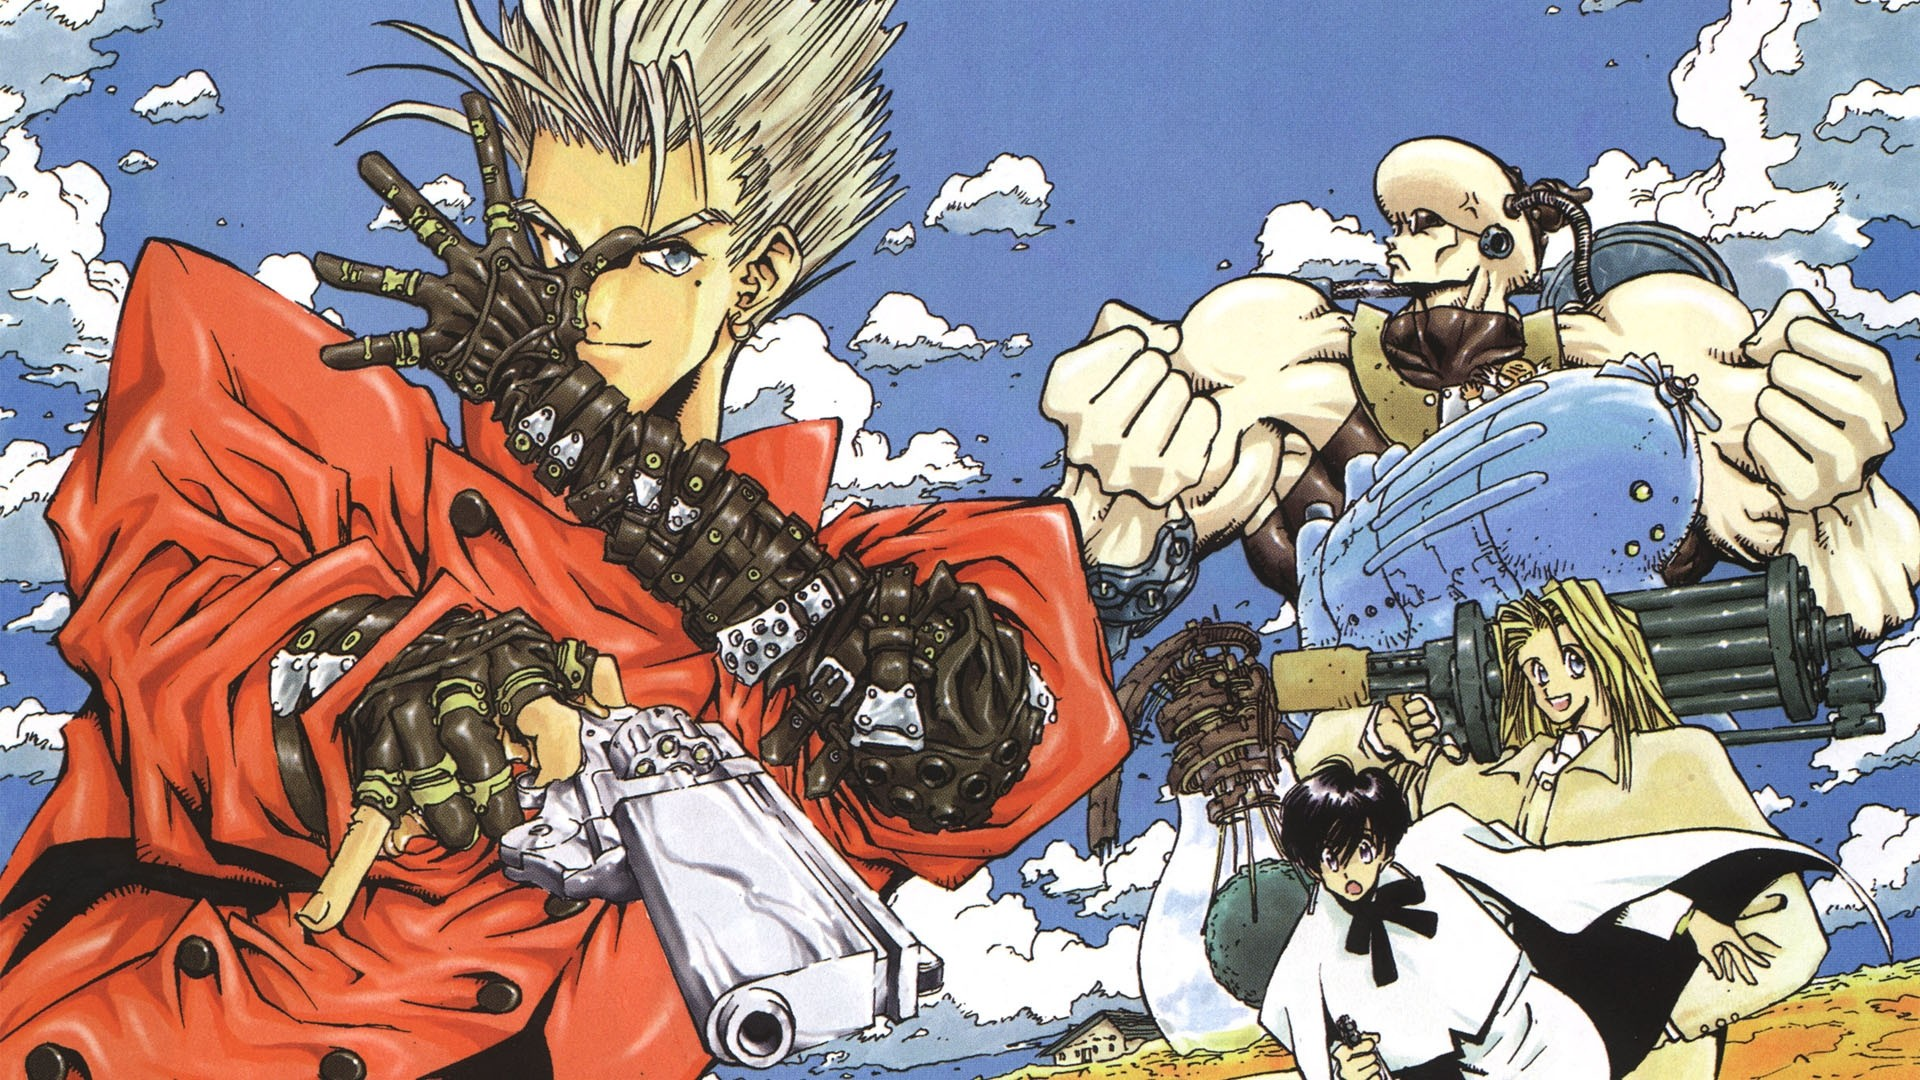 Trigun Source: Keys: anime, television, trigun, wallpaper, wallpapers.  Submitted Anonymously 3 years ago